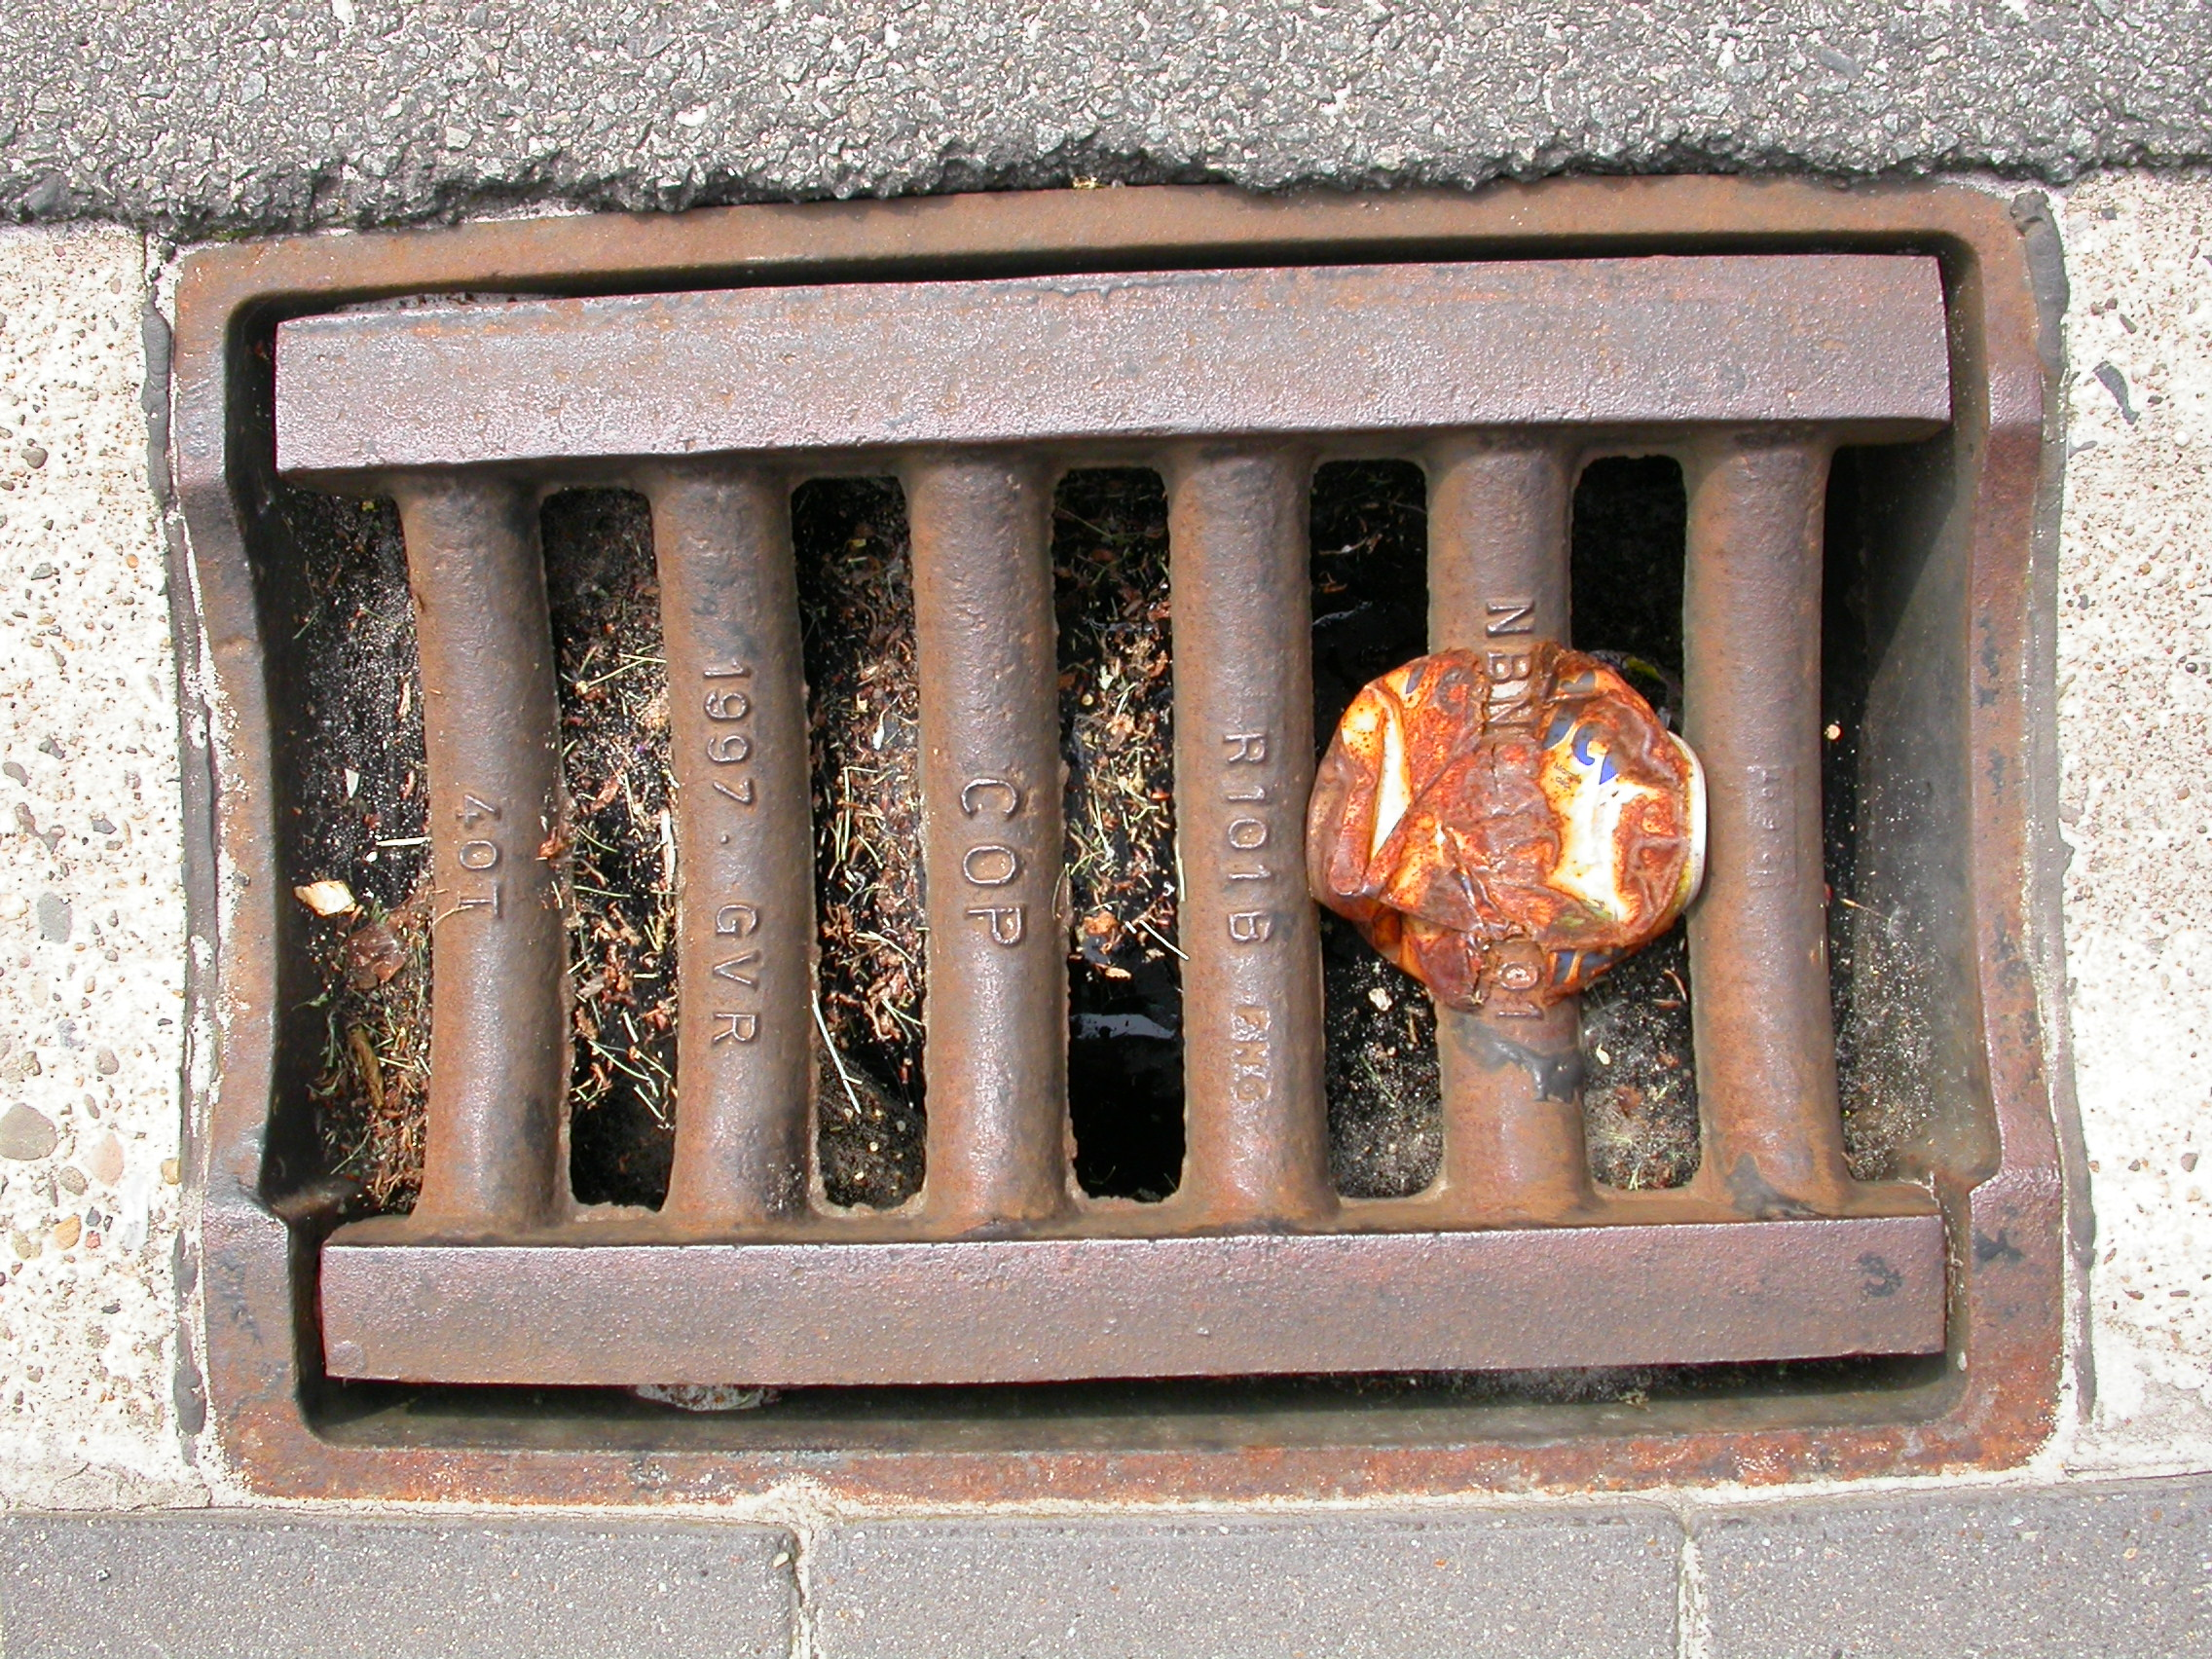 paul sewer lid metal bars garbage squashed fanta can